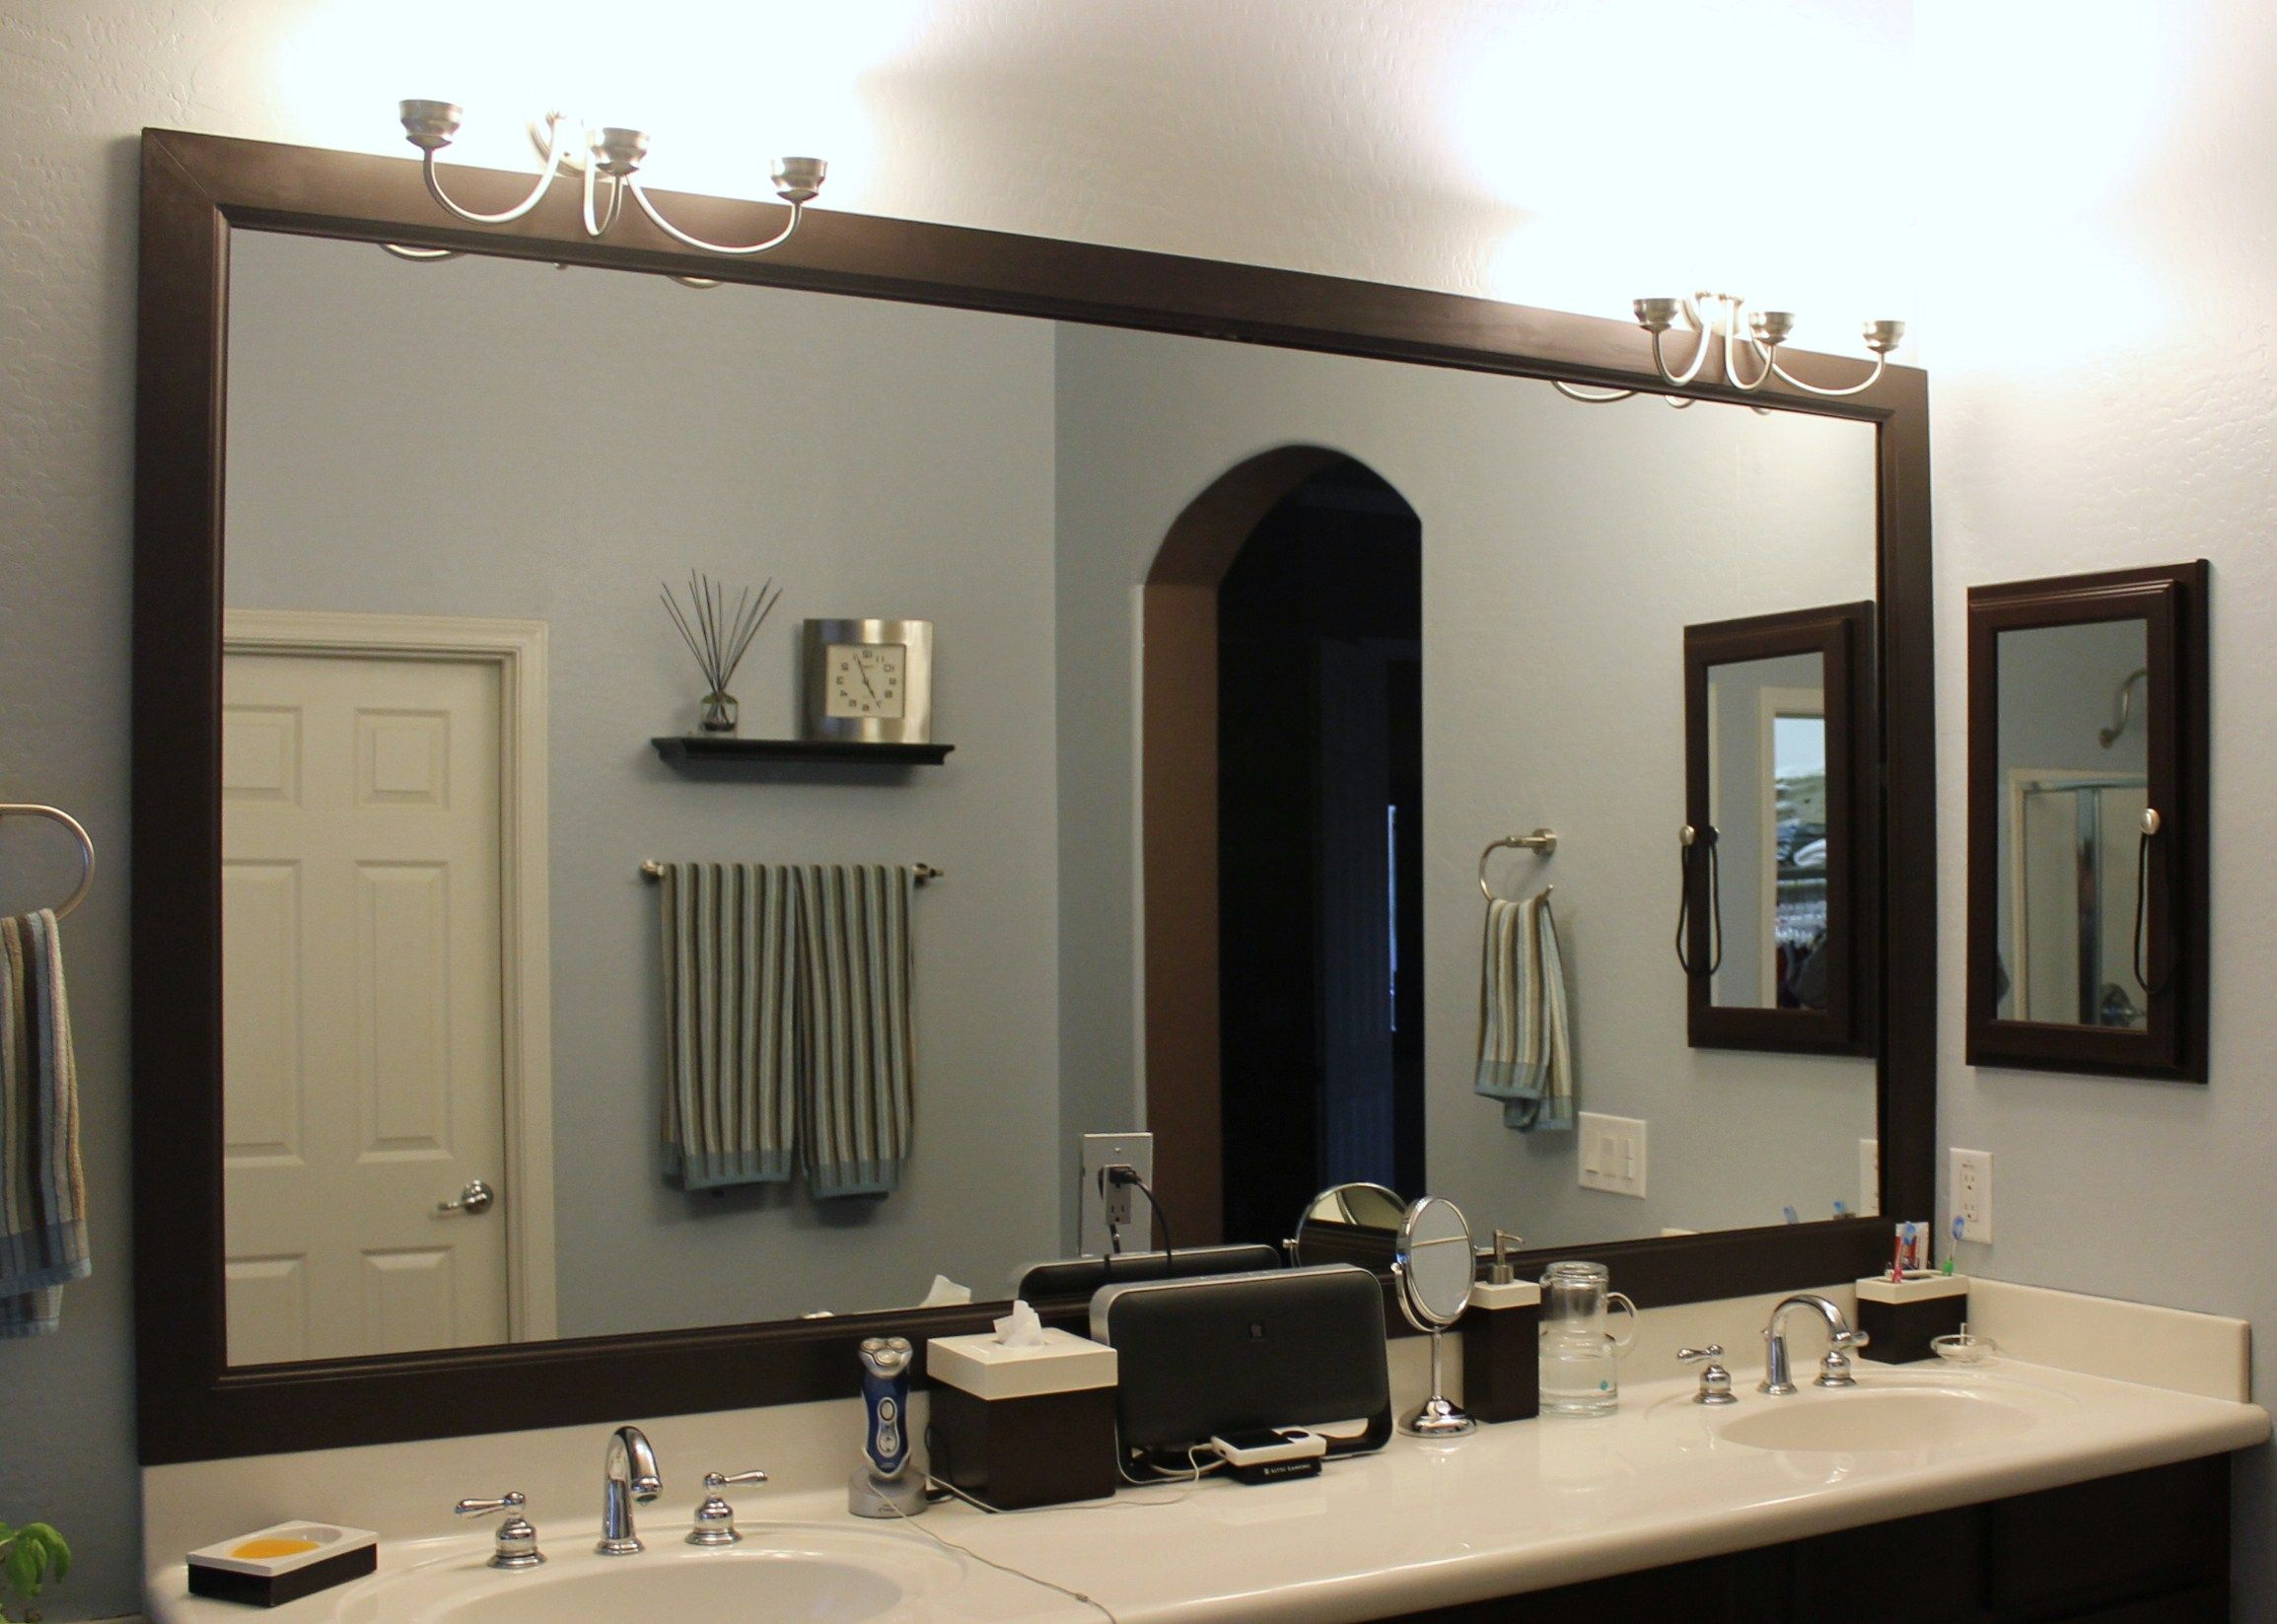 diy bathroom mirror frame bathroom ideas pinterest diy bathroom